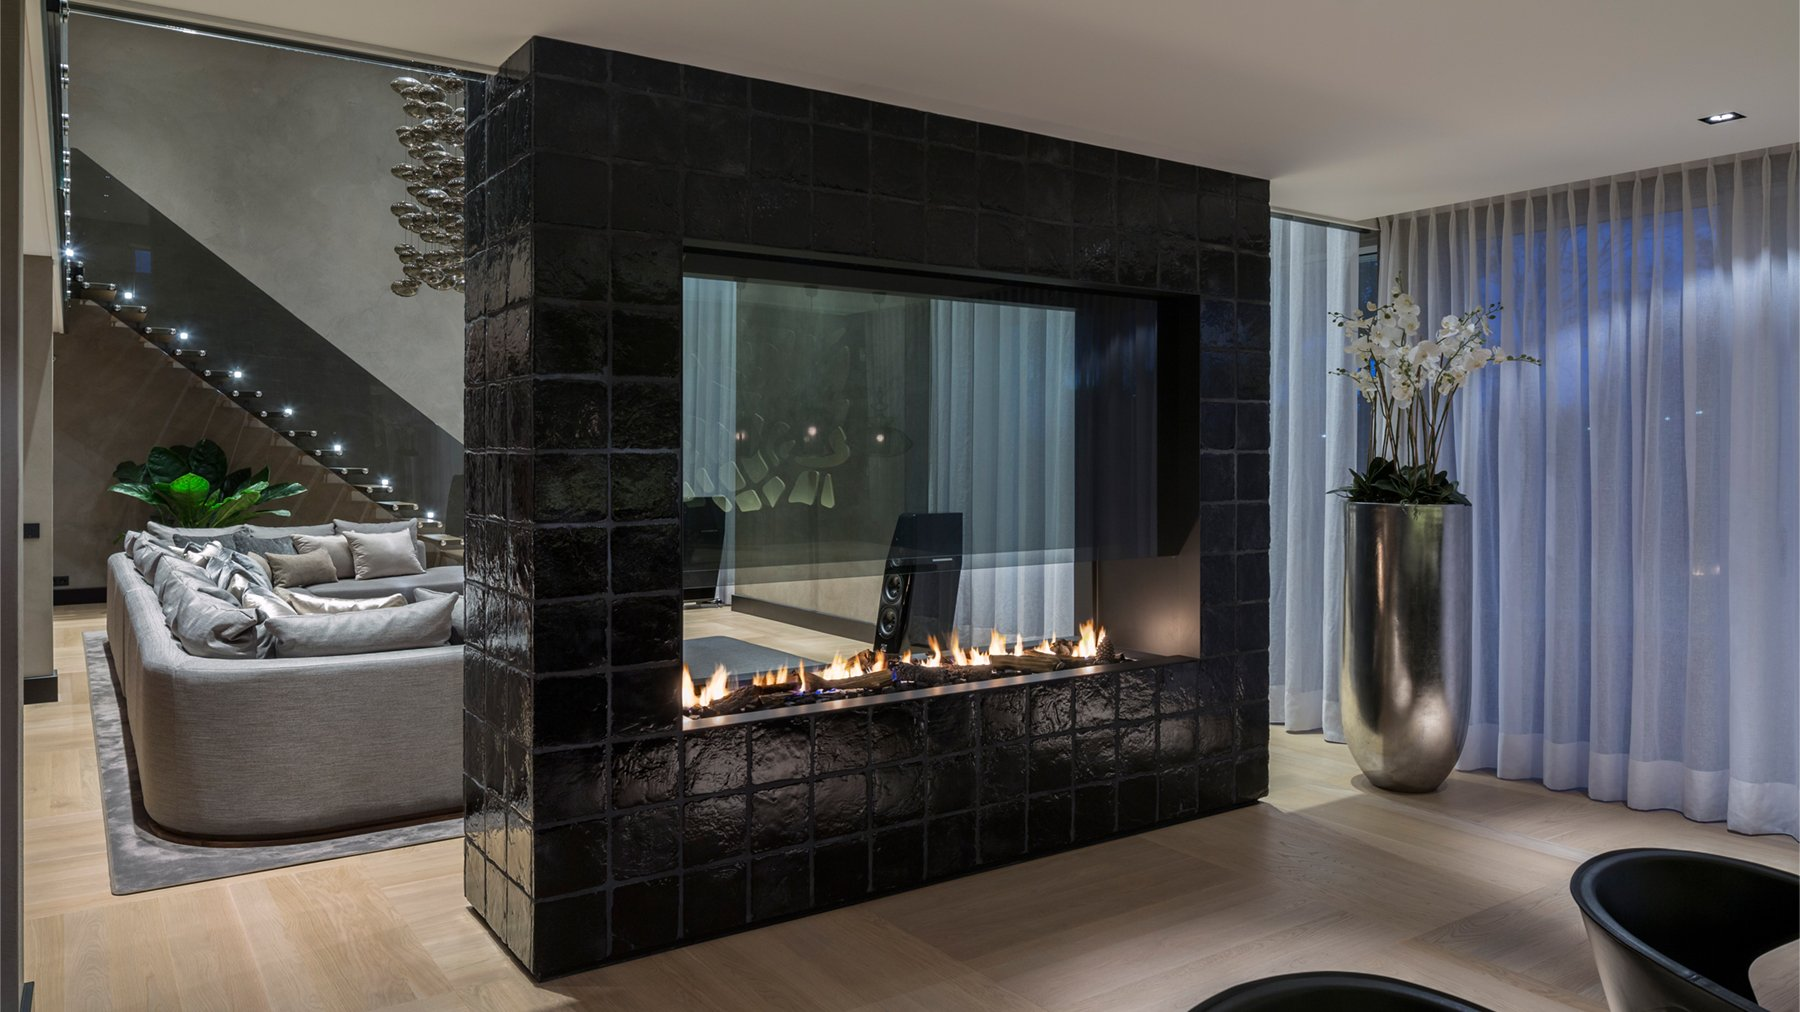 Contemporary fireplaces i designer fireplaces i luxury Luxury fireplaces luxury homes